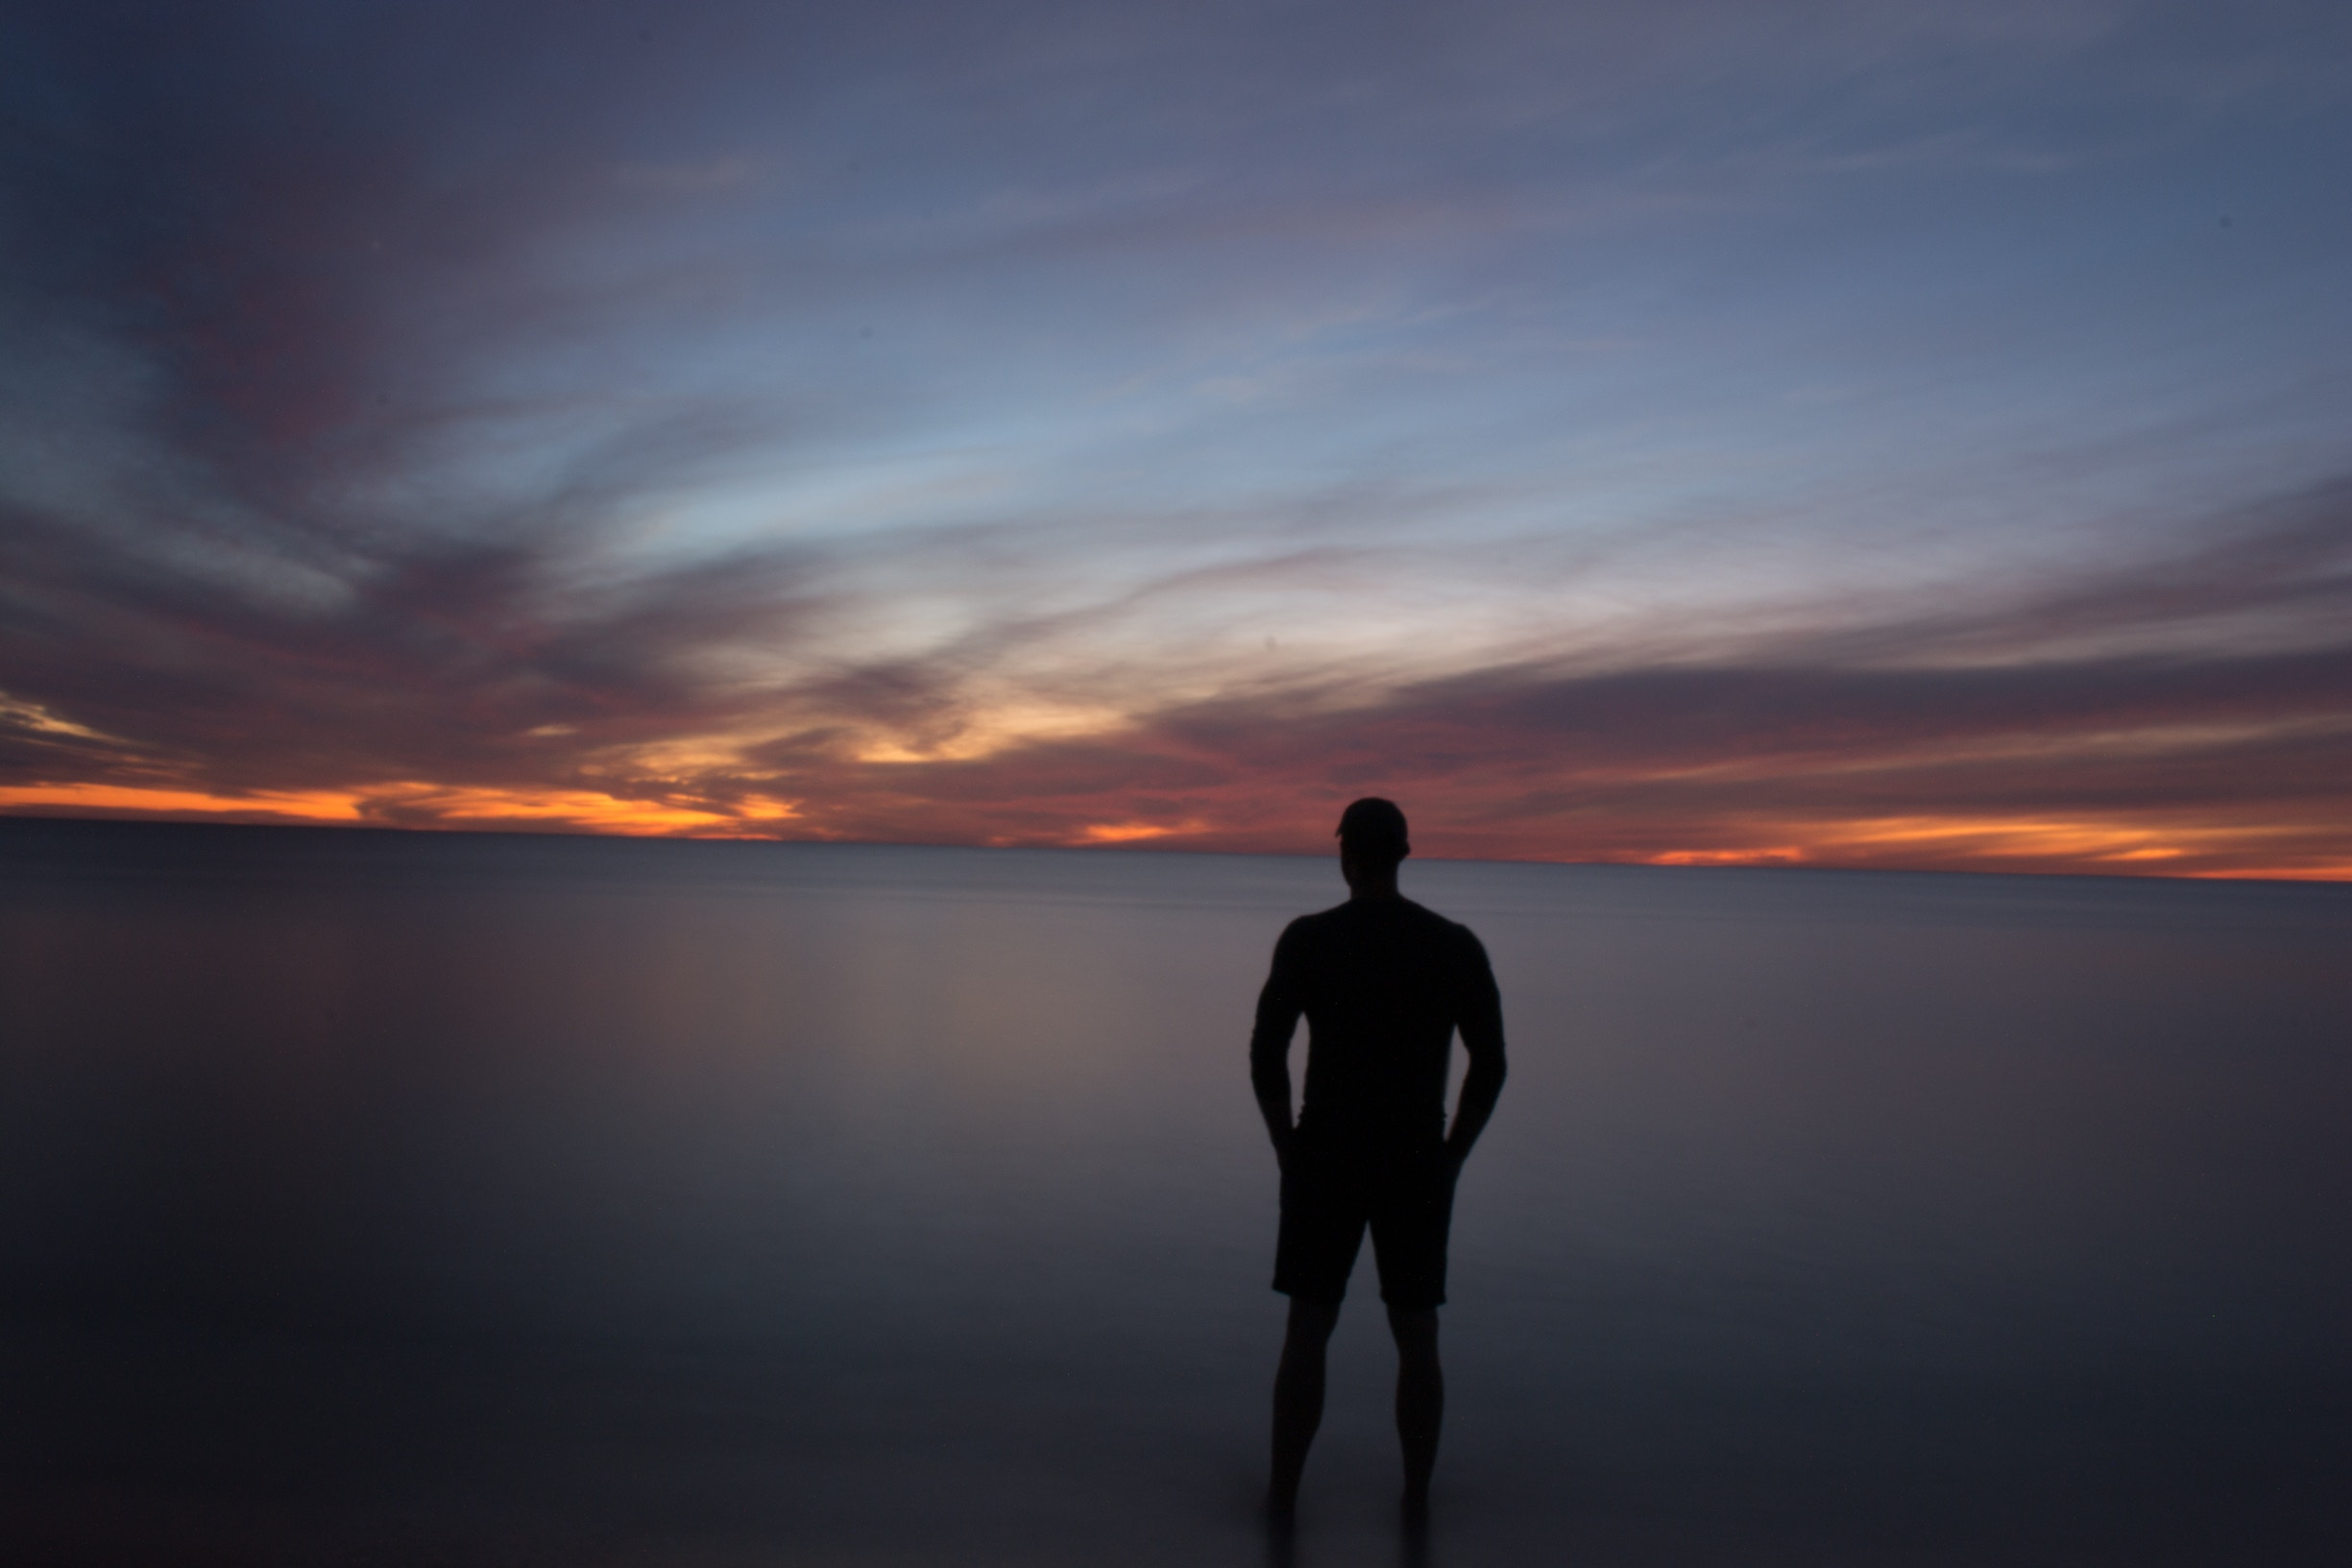 man standing in calm waters